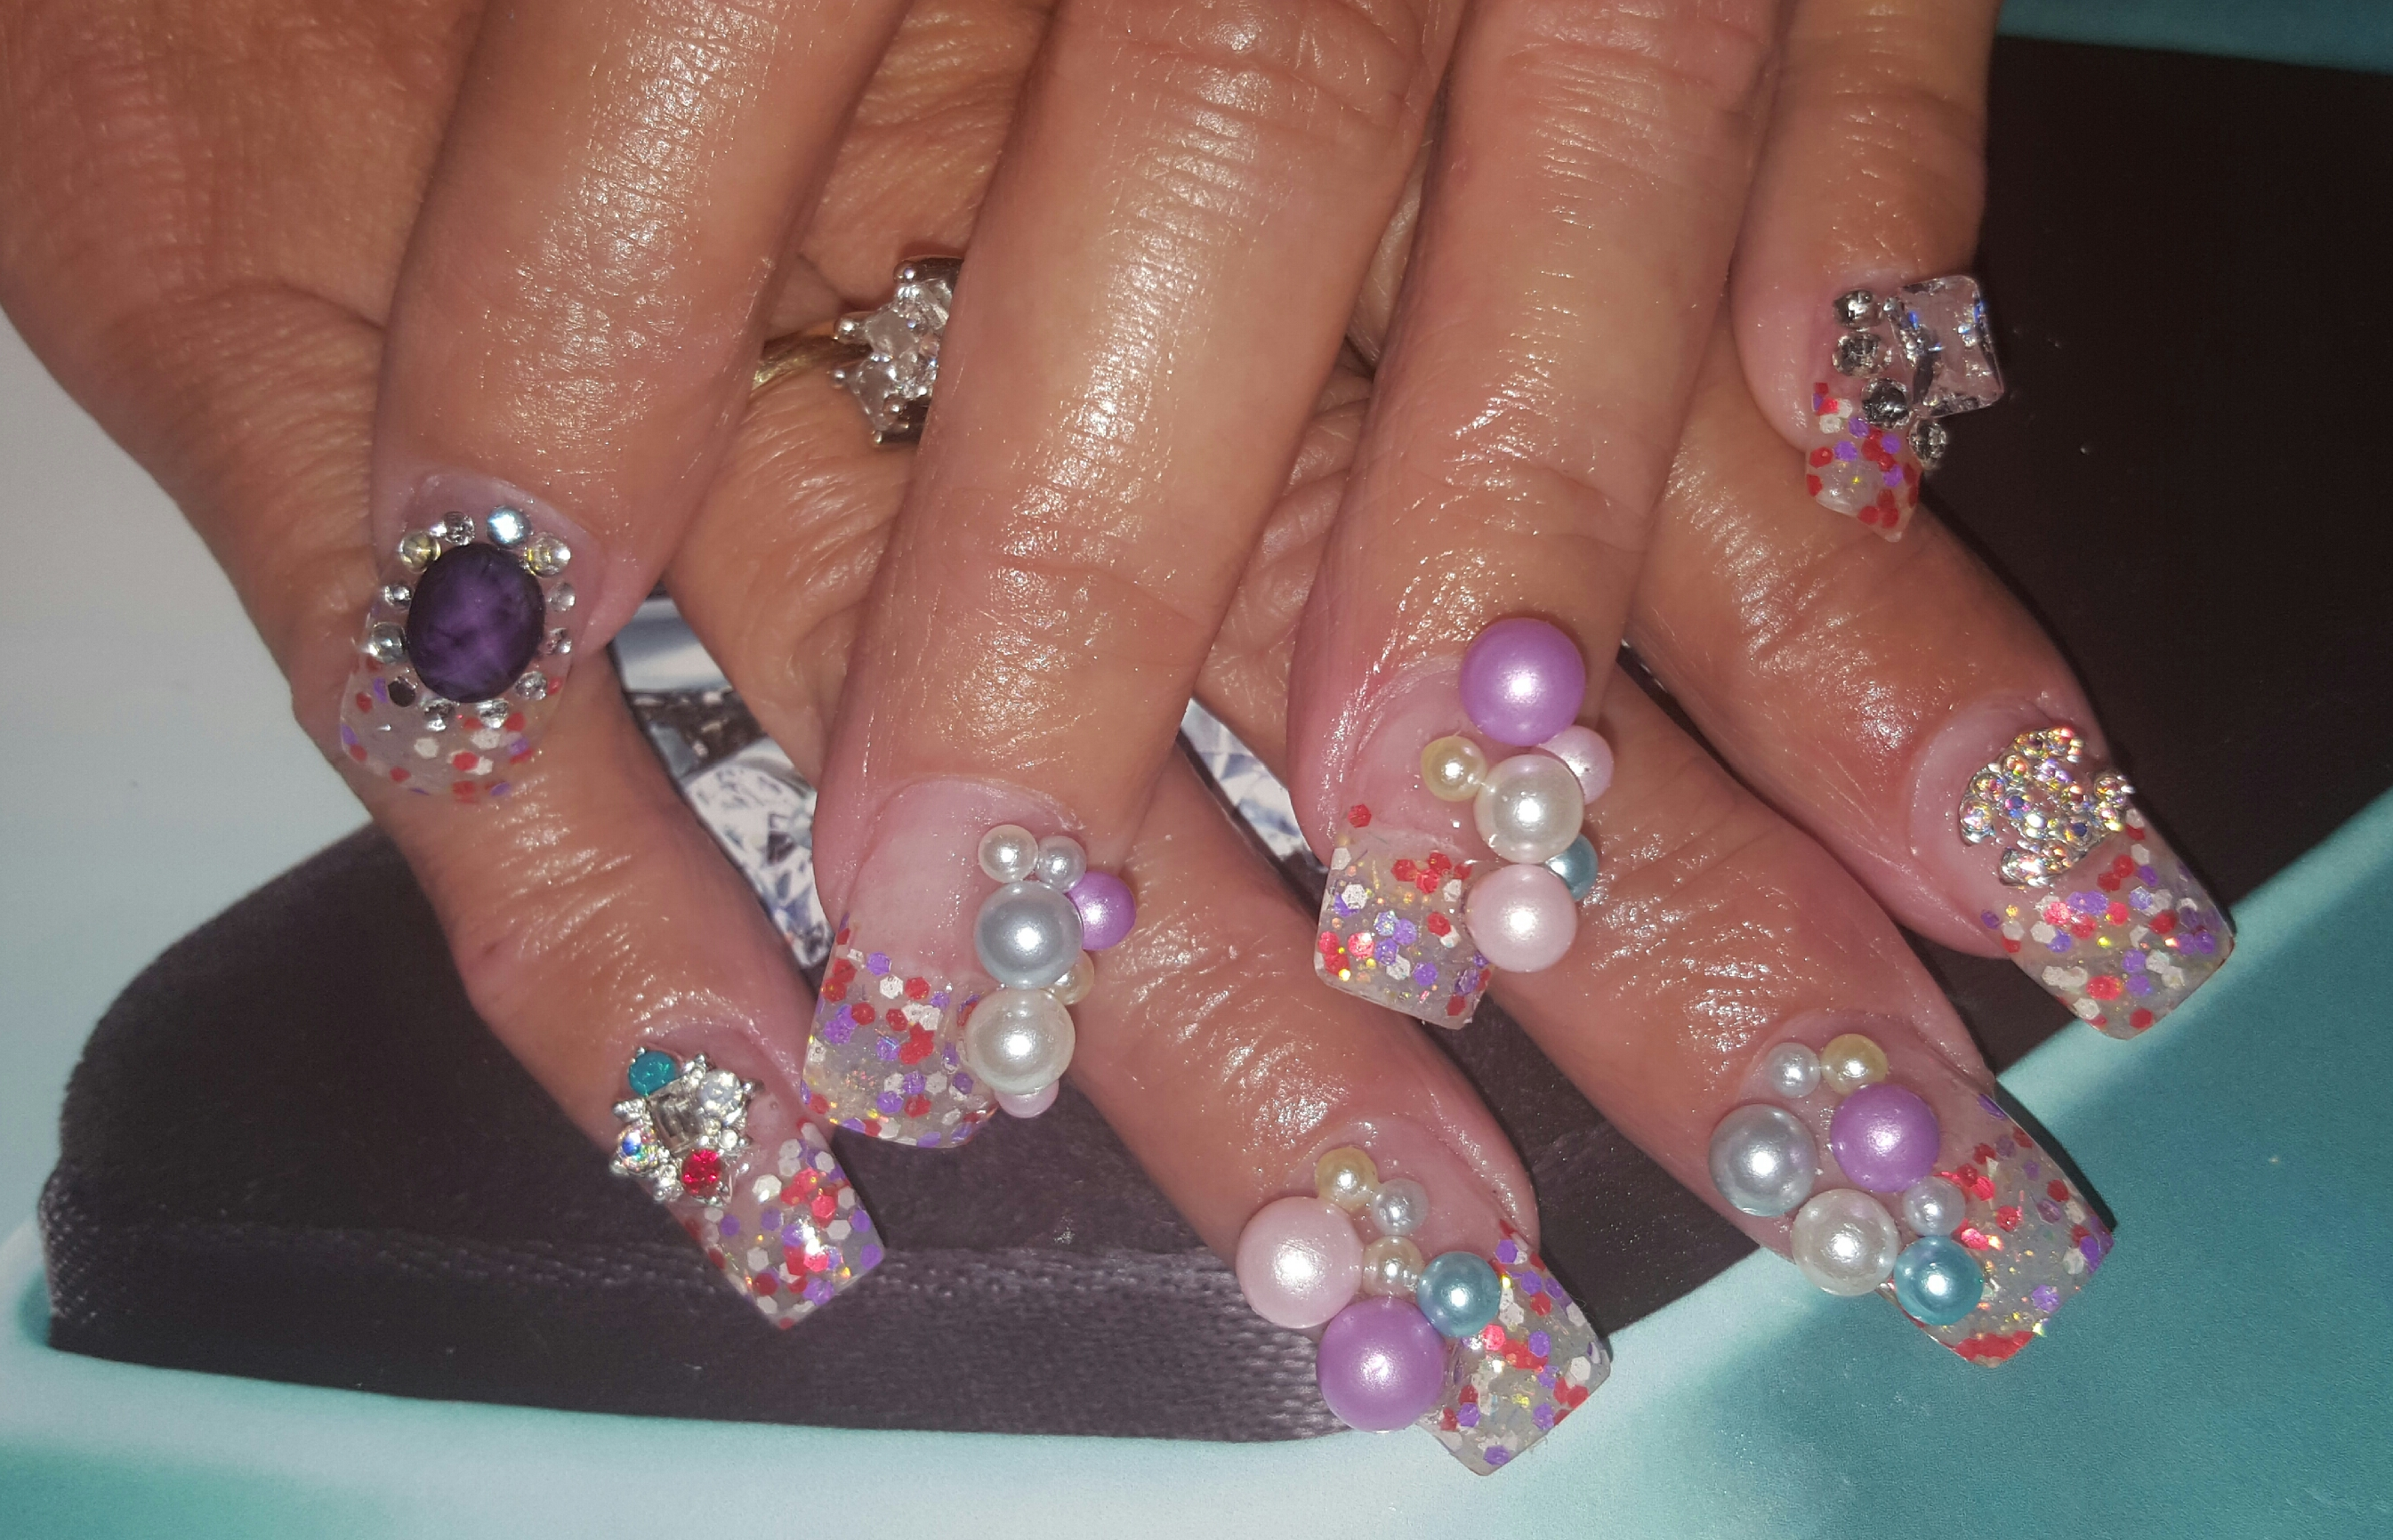 Diamond Nails & Spa 433 Reiger Dr Ste 9, Williston, ND 58801 - YP.com